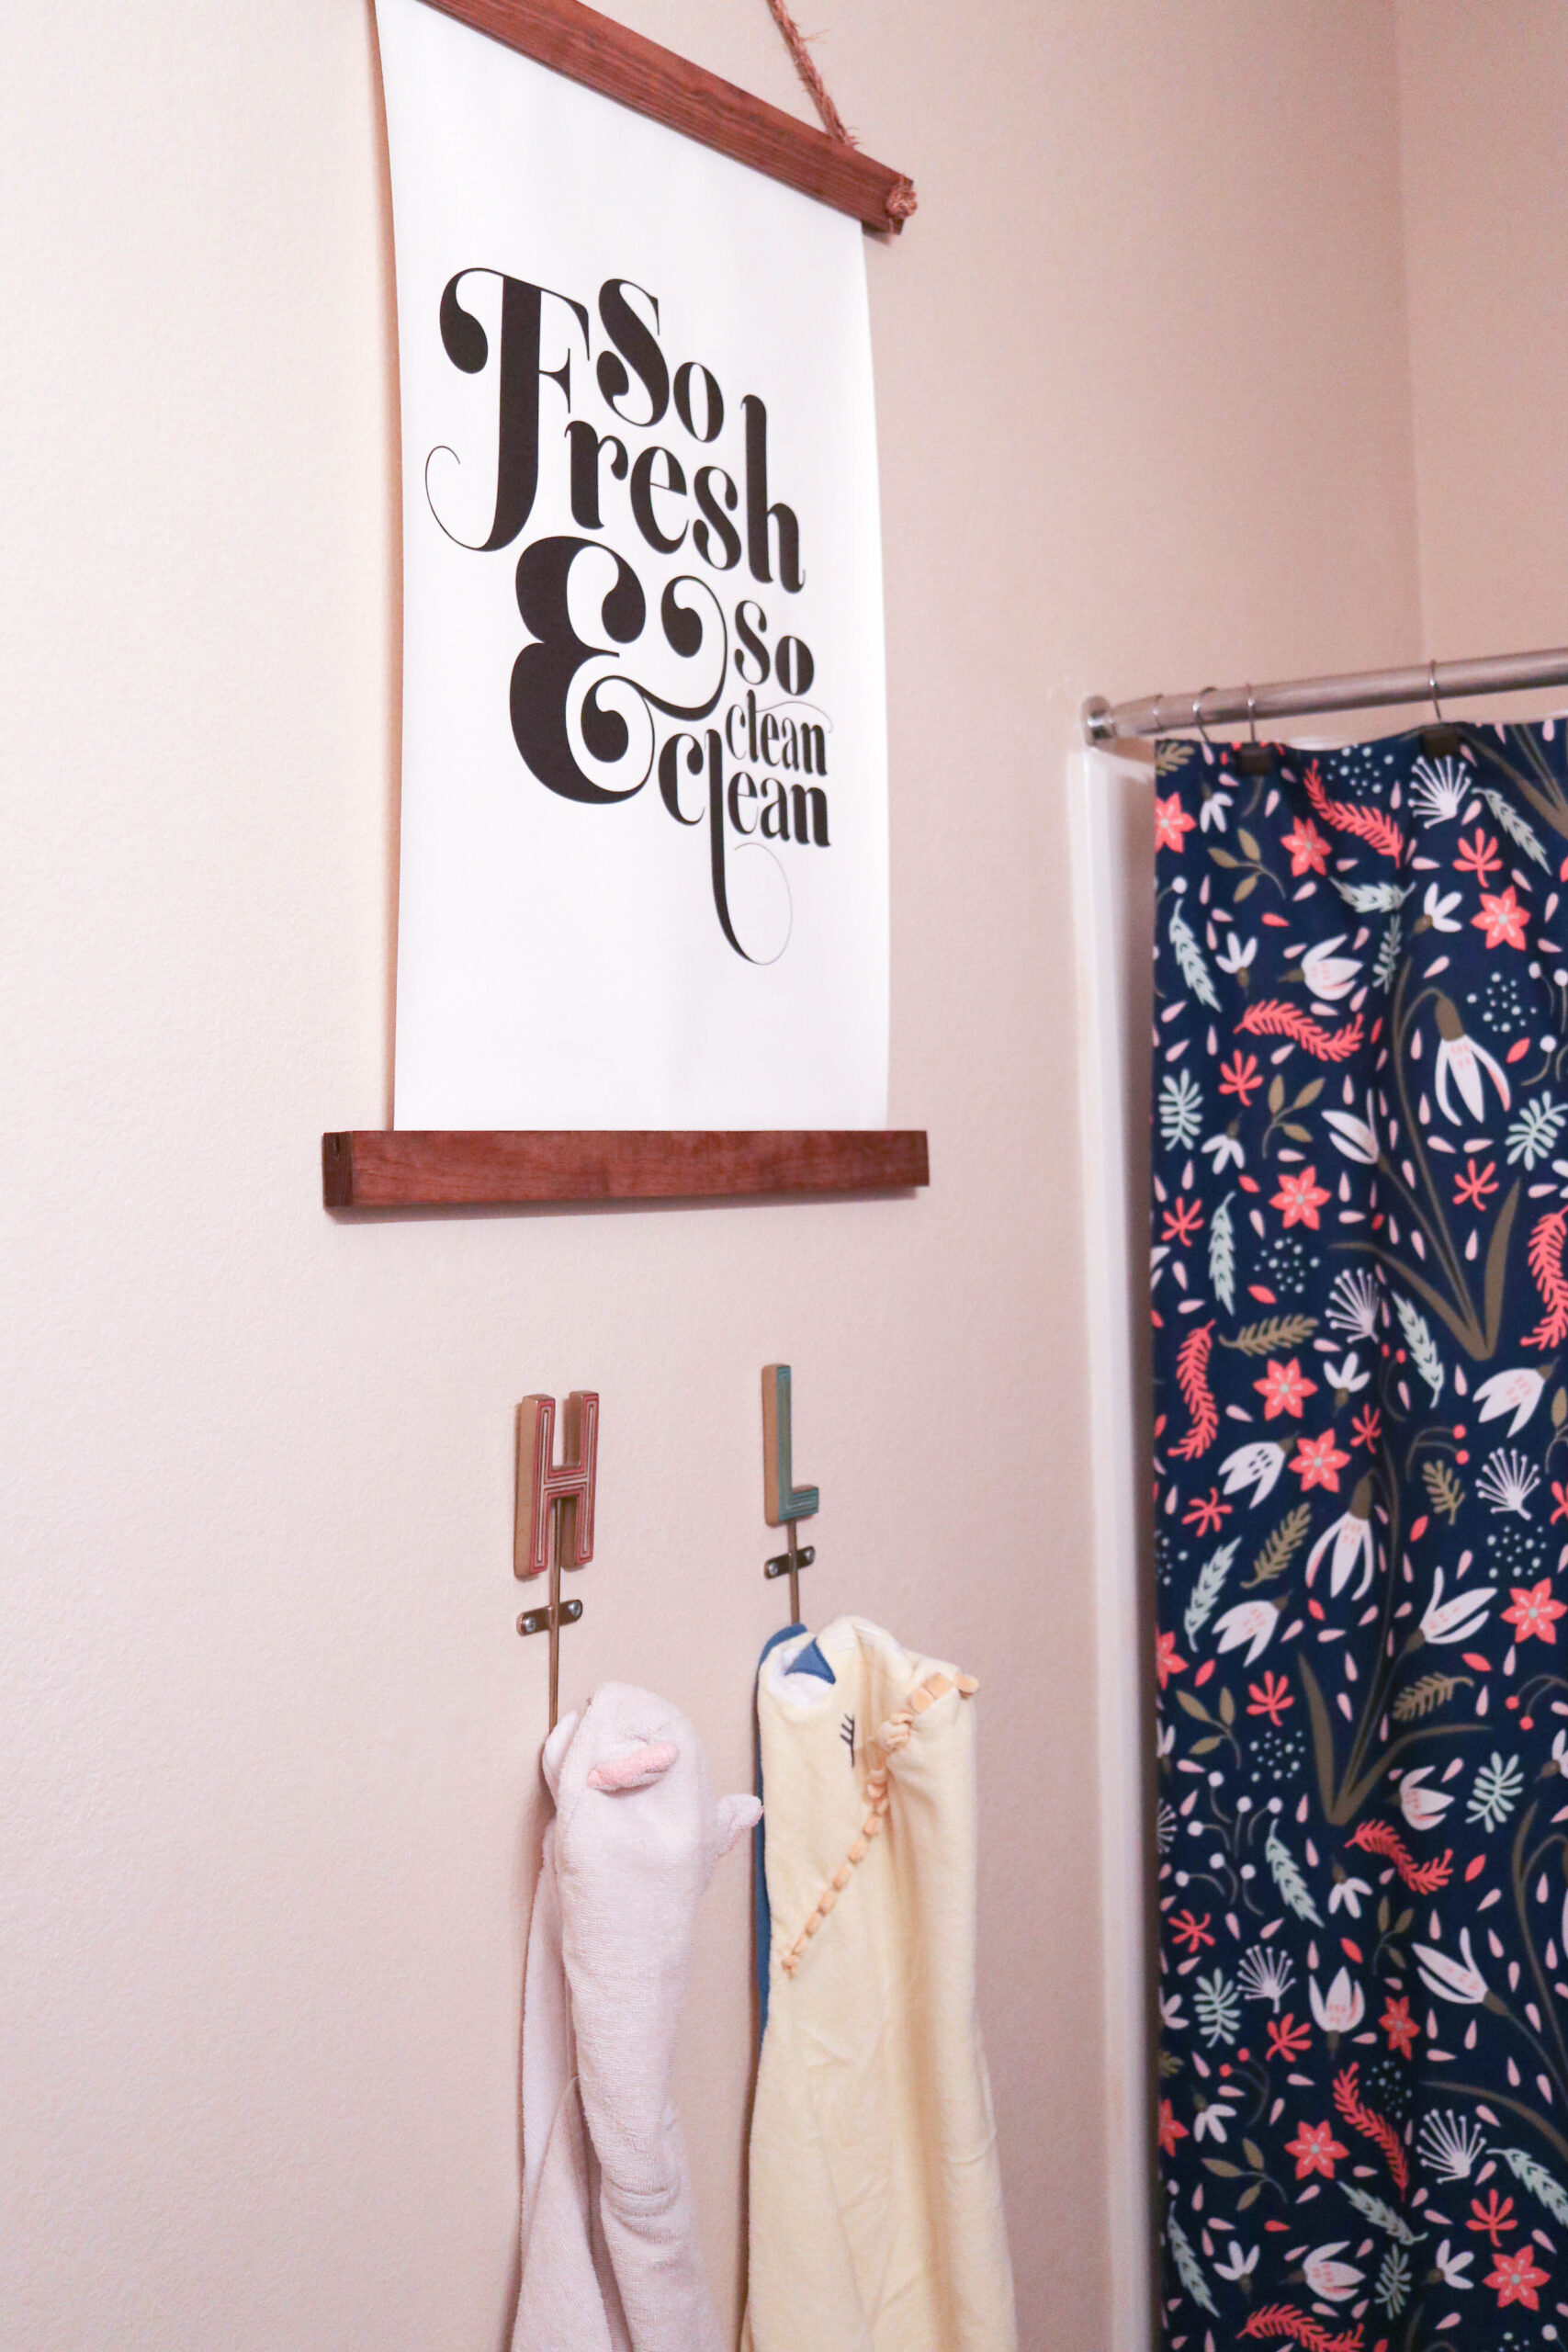 so fresh and so clean clean bathroom sign #bathroomdecor #bathroom #guestbathroom